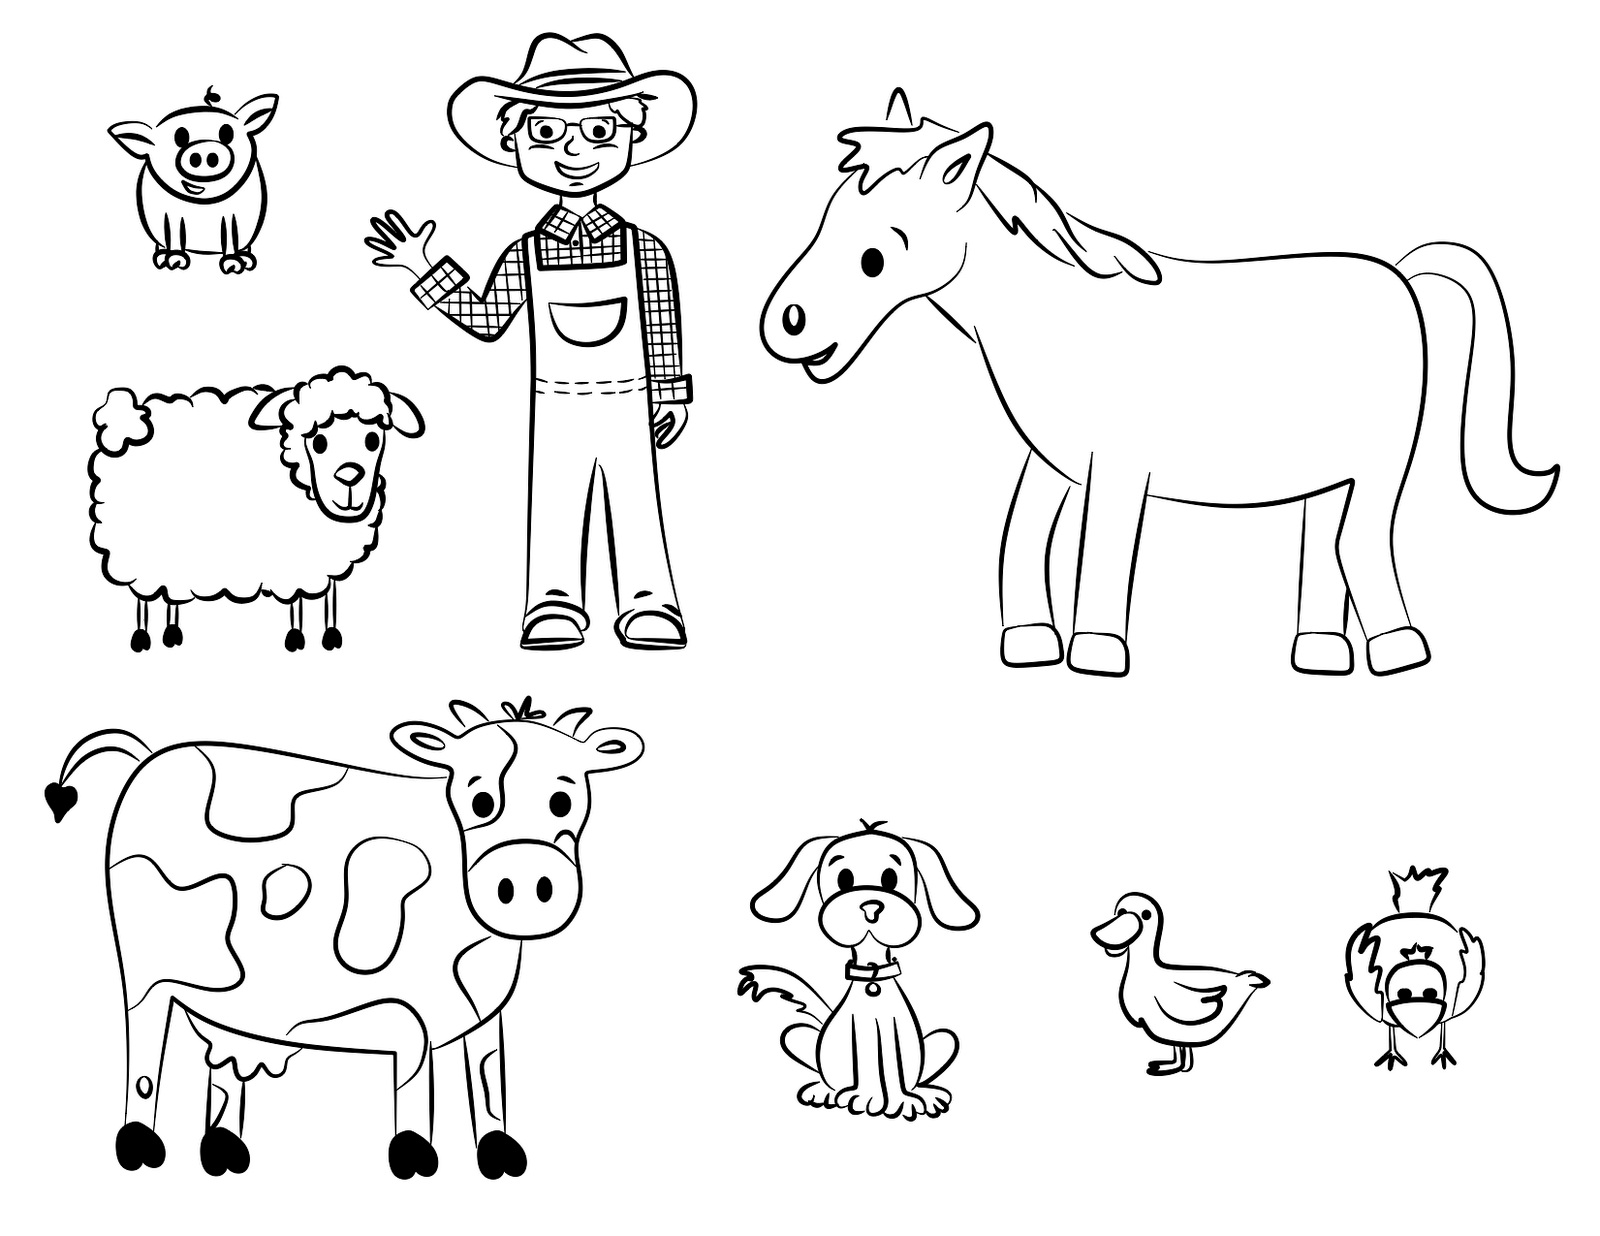 free printable farm animal coloring pages for kids - Animal Pictures To Print Free